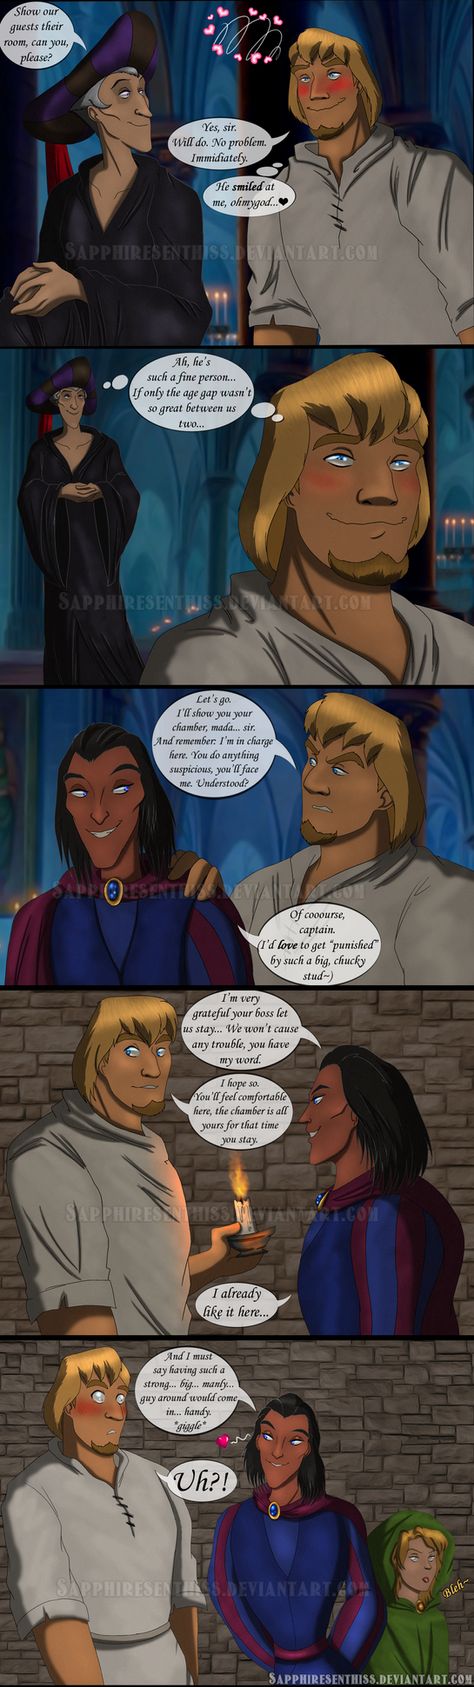 Never Judge A Gypsy By His Skin - PAGE 17 by Sapphiresenthiss